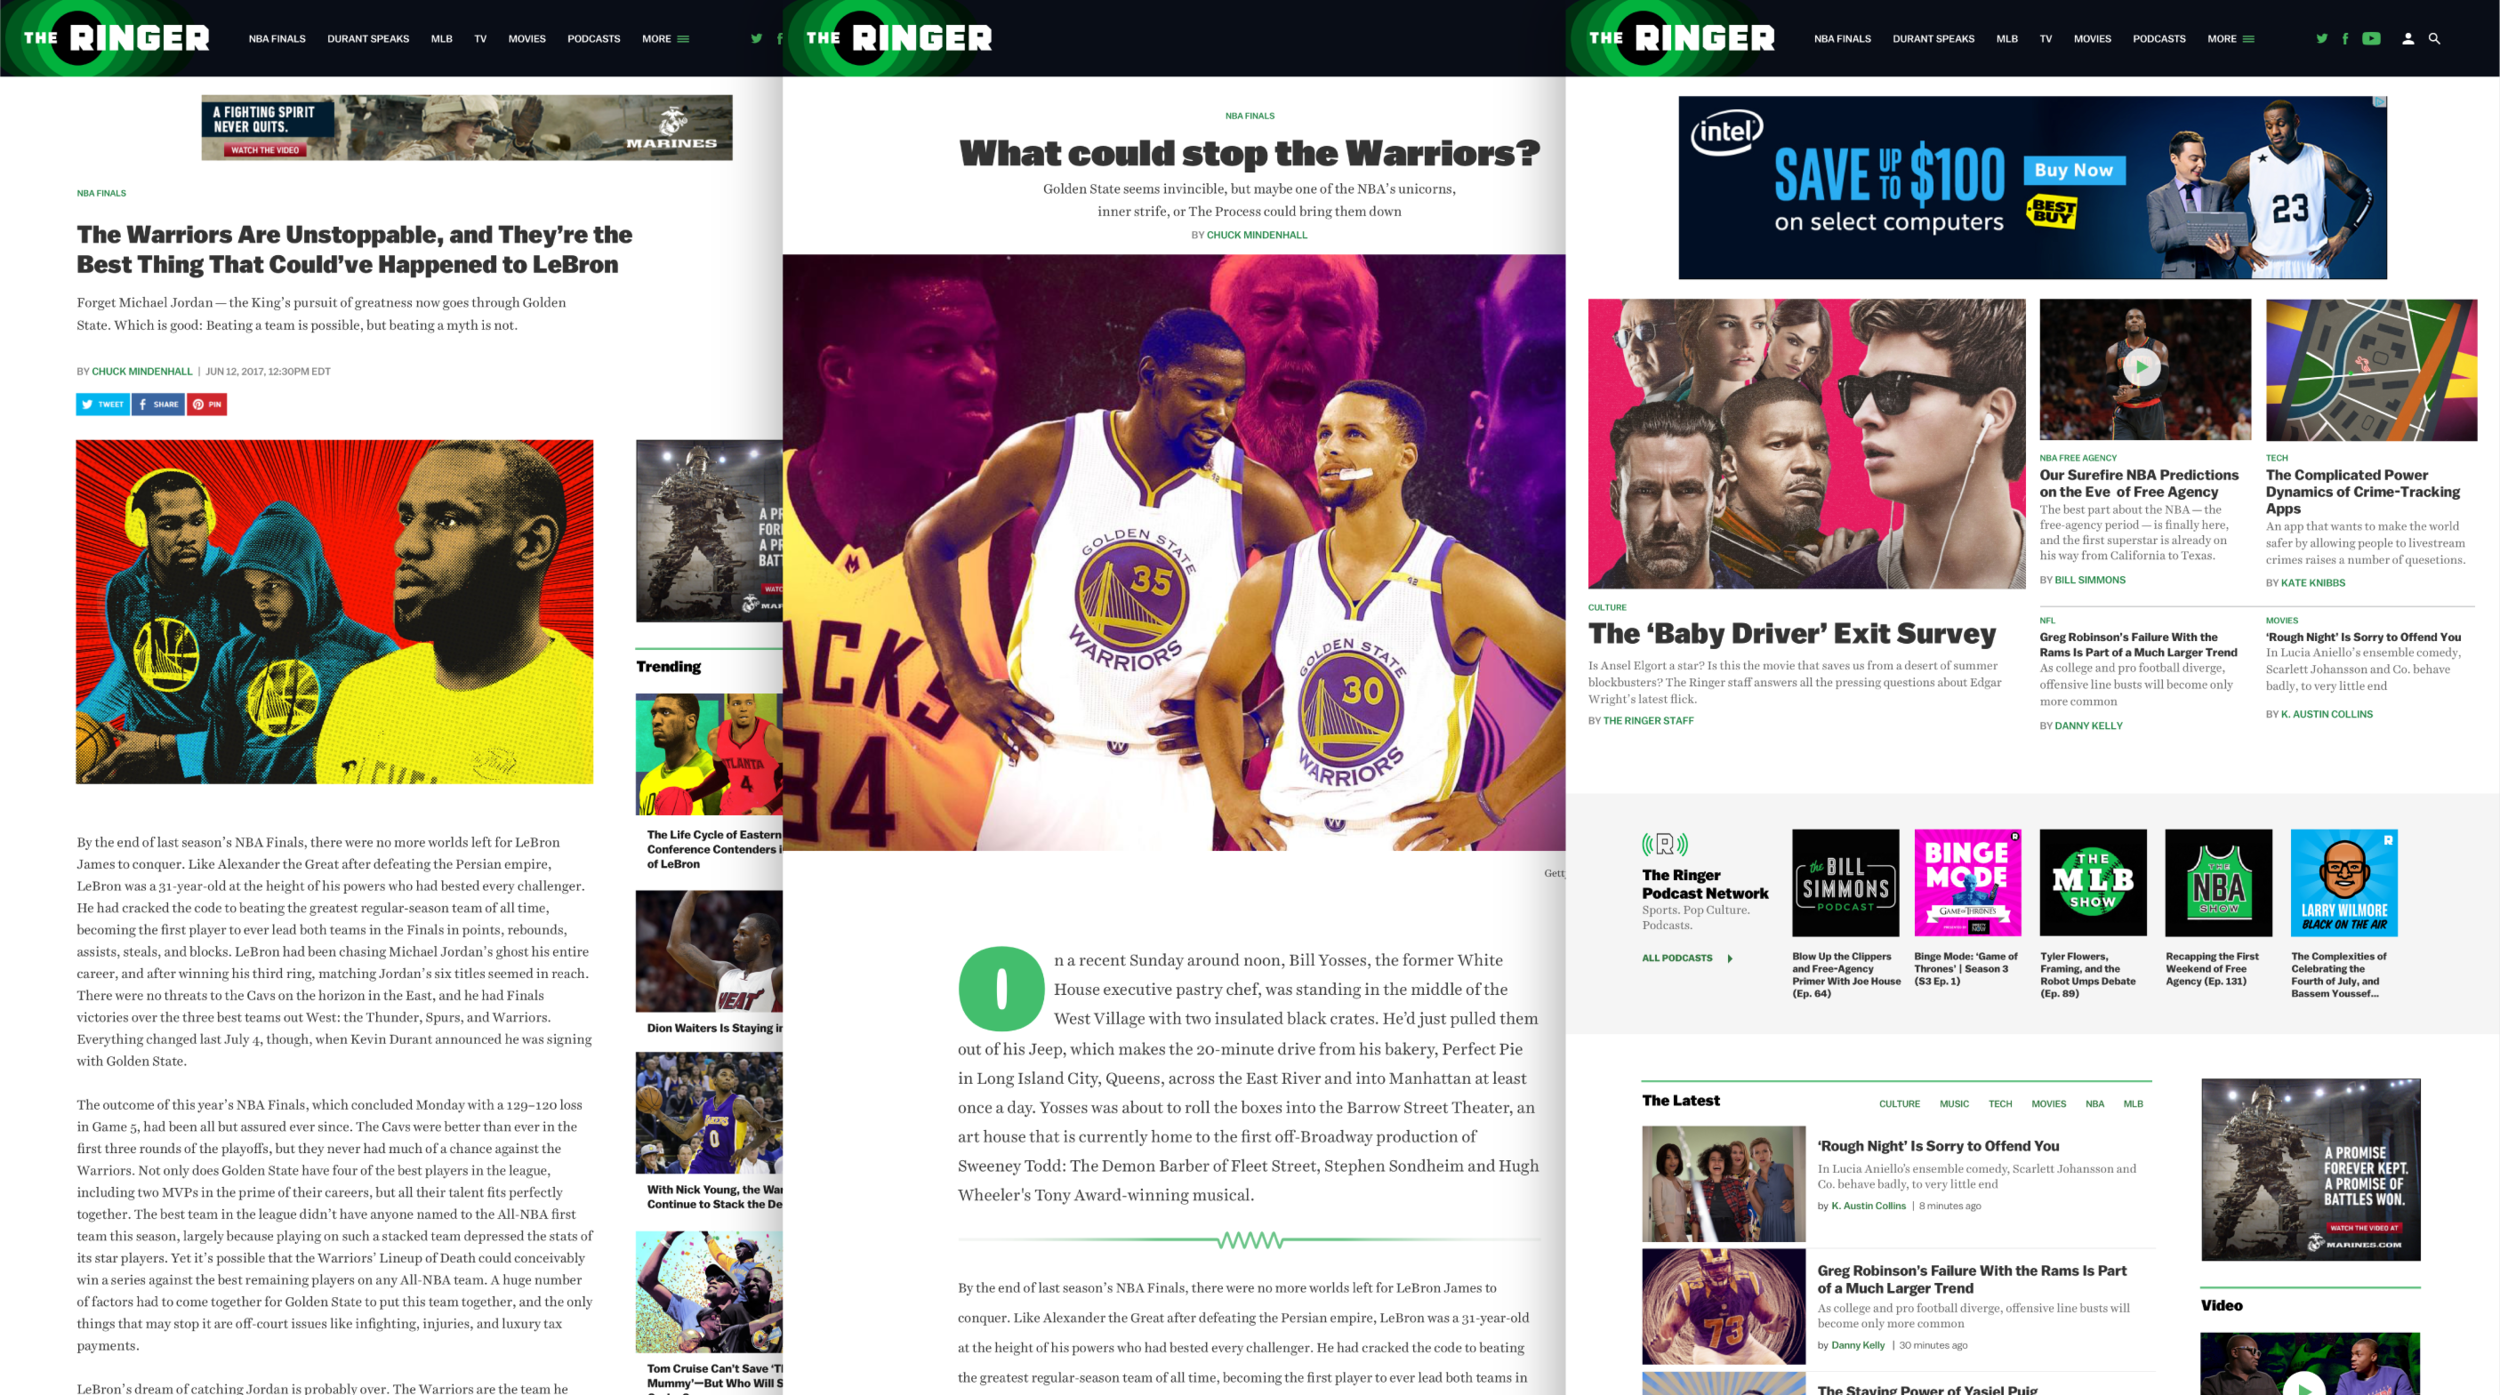 The Ringer article, longform, and home page